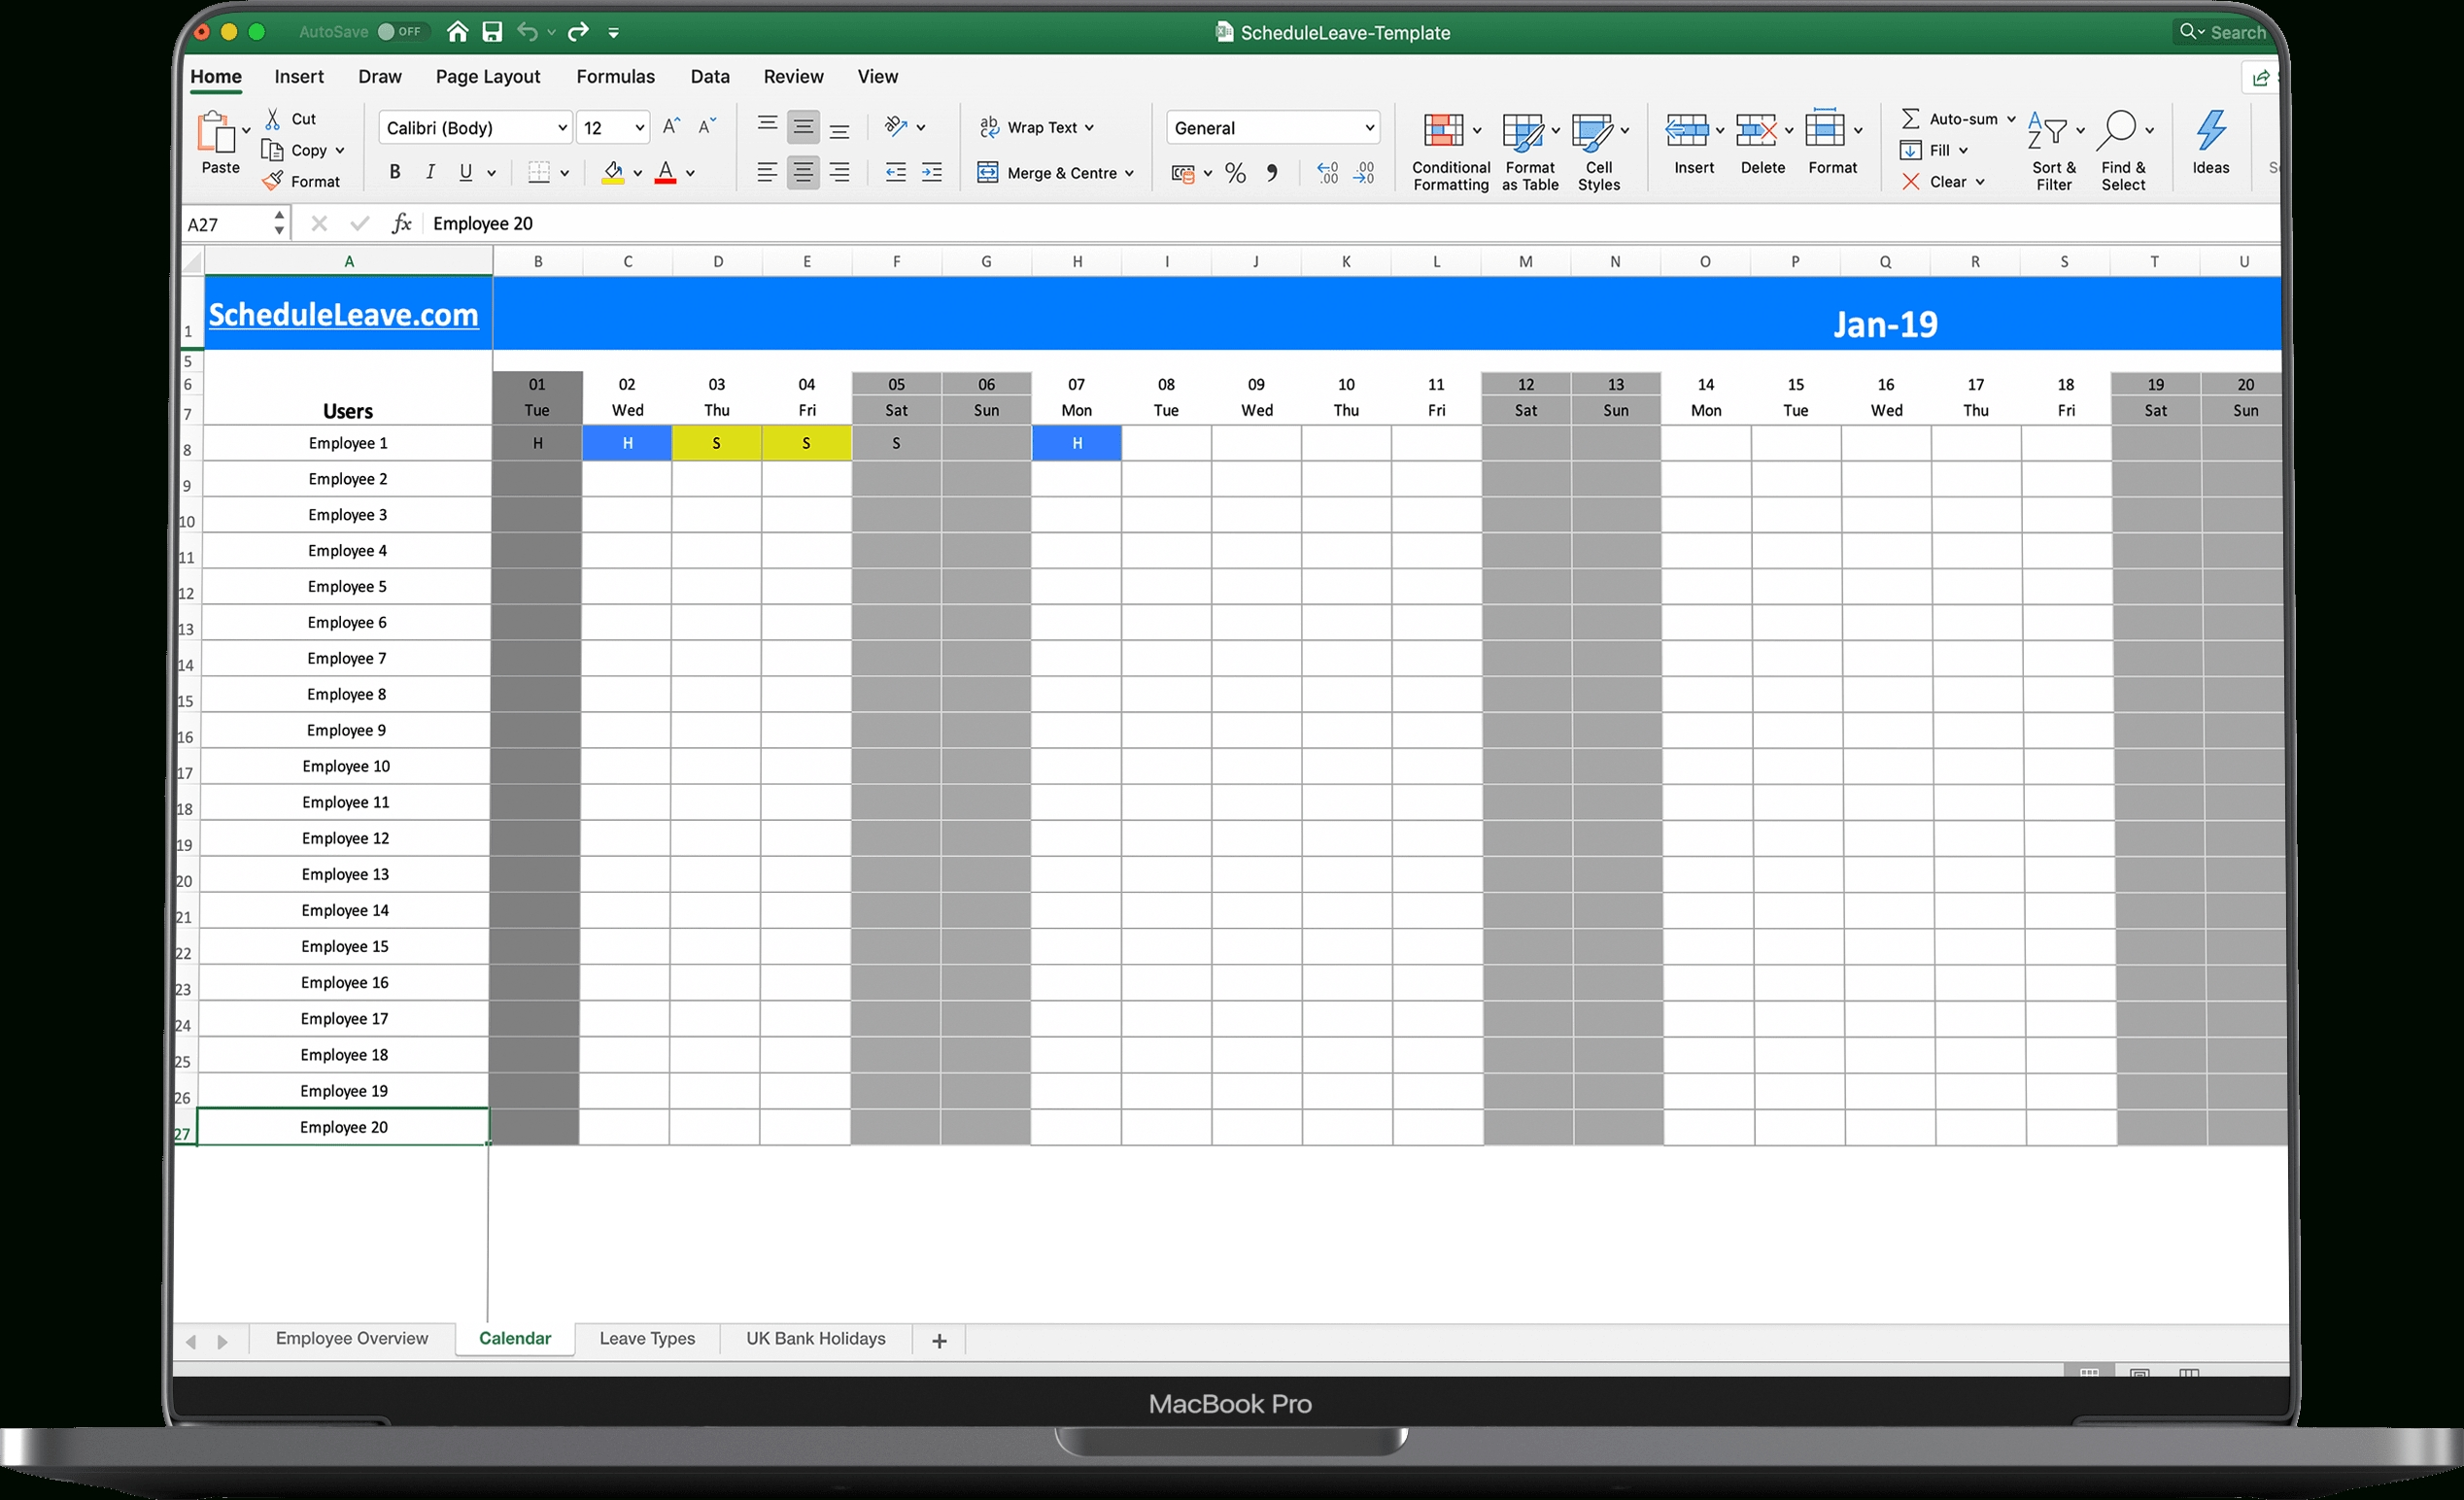 Free Excel Leave Calendar 2021 Spreadsheet Template-Holiday Spreadsheet 2021